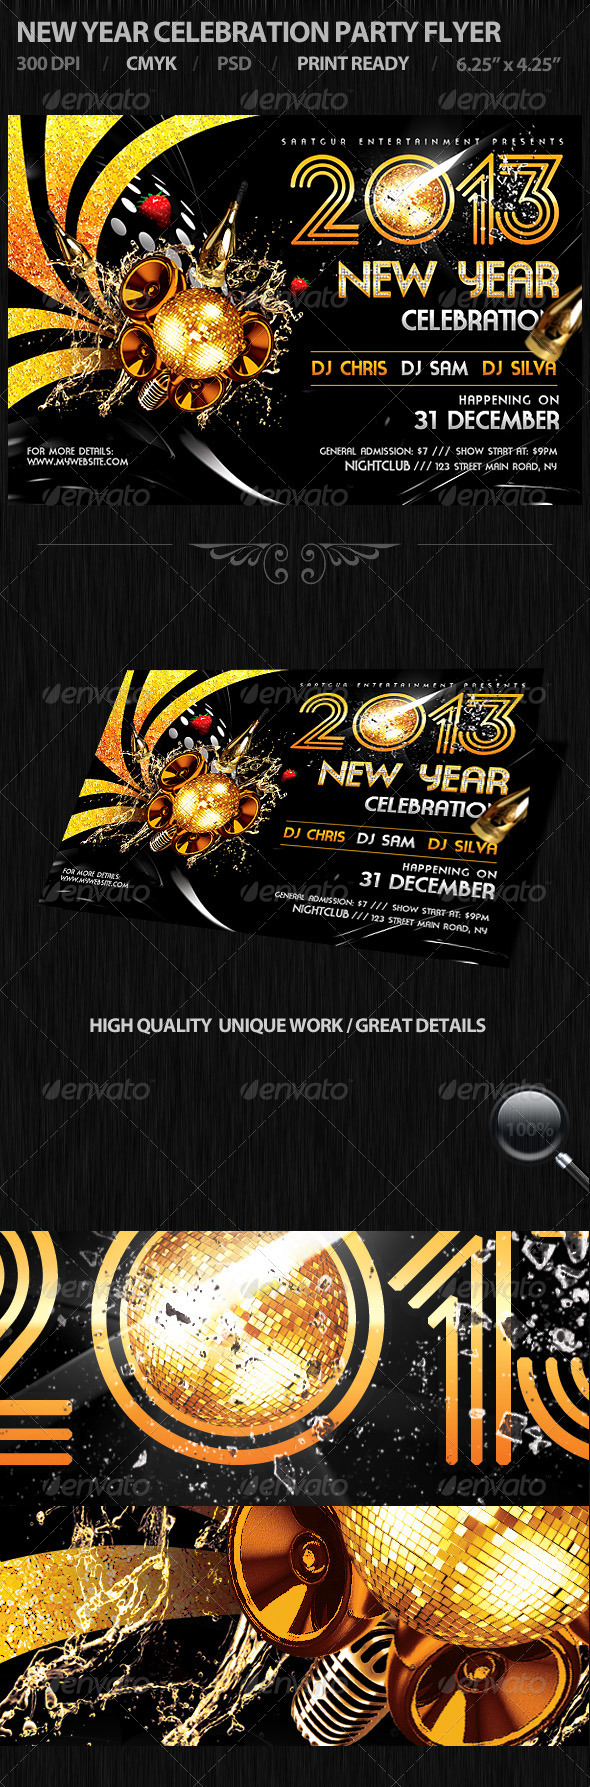 New Year Celebration Party Flyer - Events Flyers